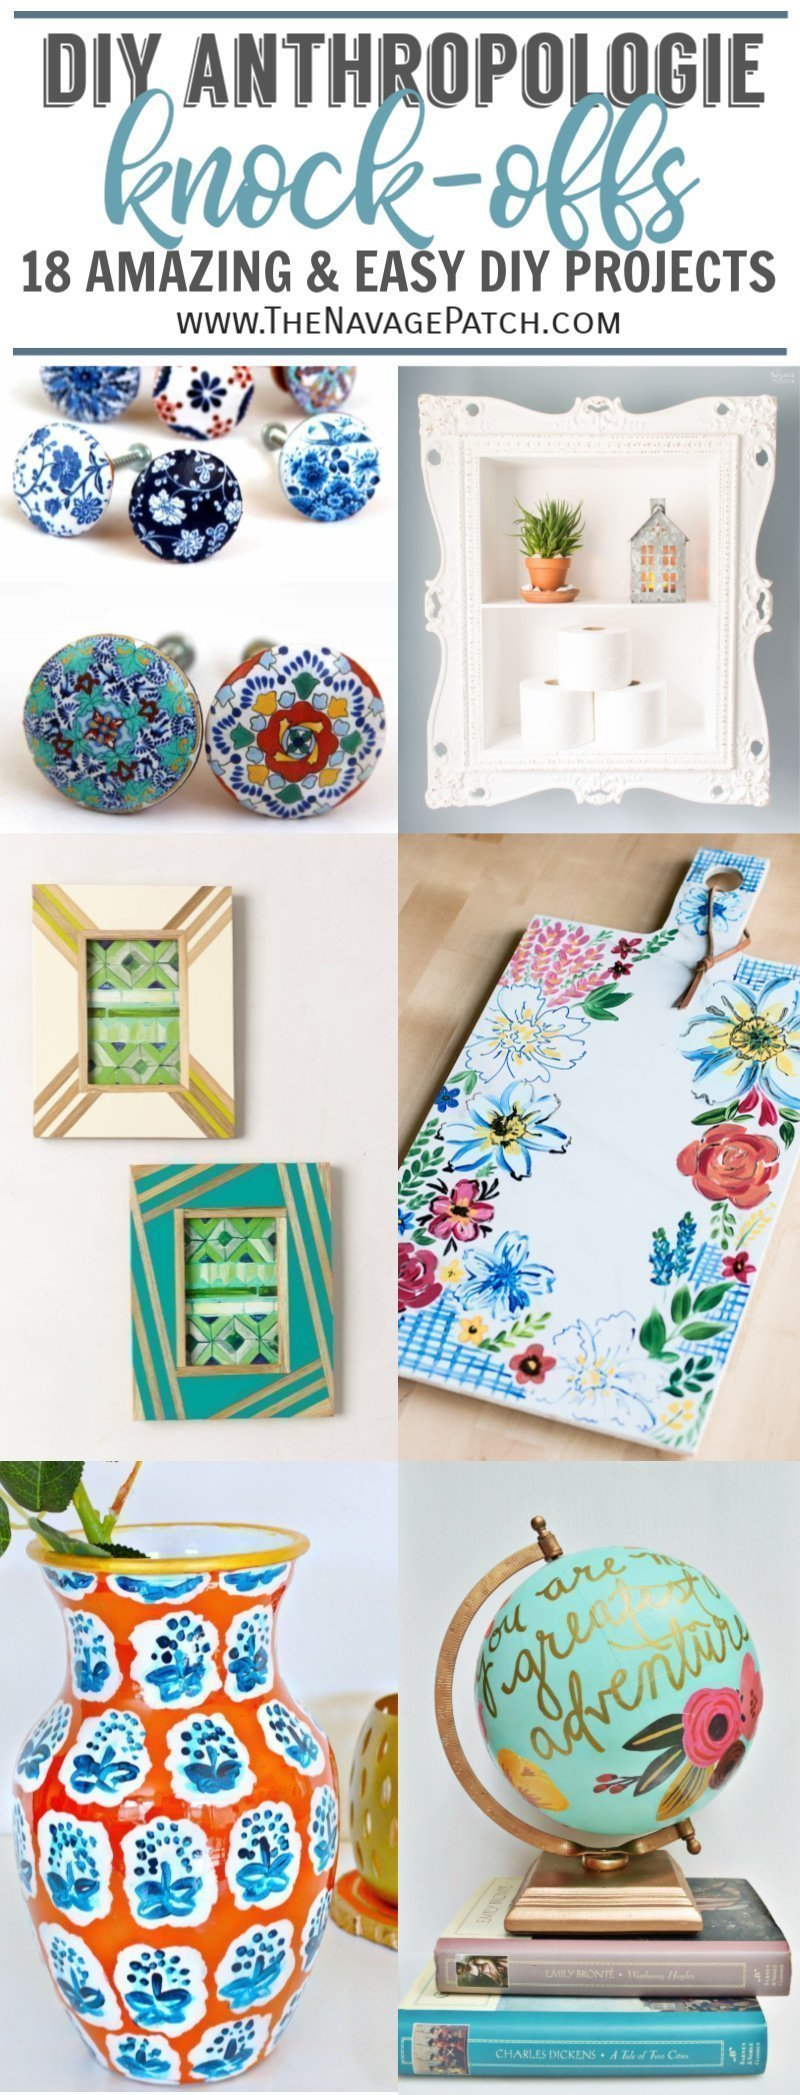 Amazing DIY Anthropologie Knock-offs | TheNavagePatch.com